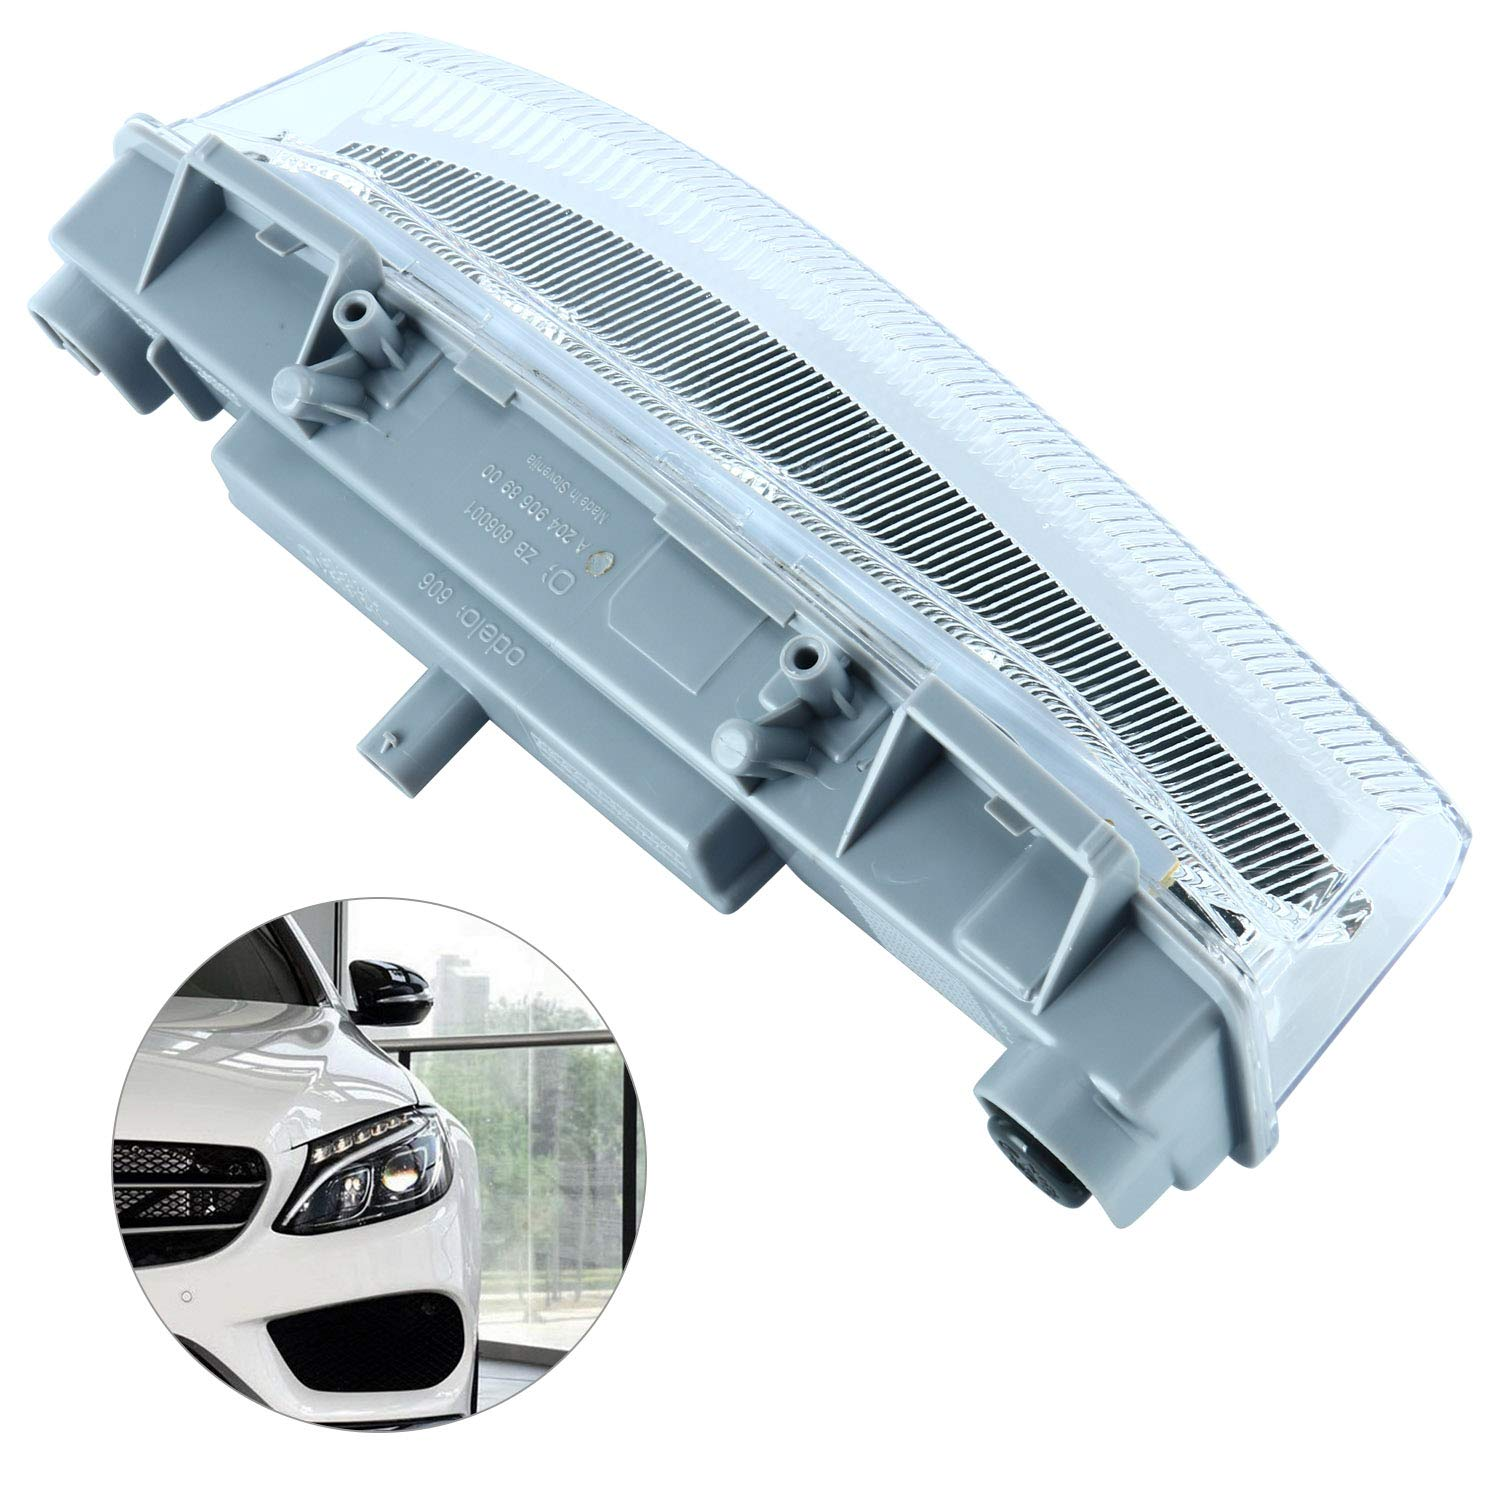 Left DRL Fog Lamp LED Daytime Running Lamp Fog Light Compatible with 2007-2015 Mercedes Benz C Class W204 C250 C300 C350 E Class W212 E350 Yae First Trading Co. Itd